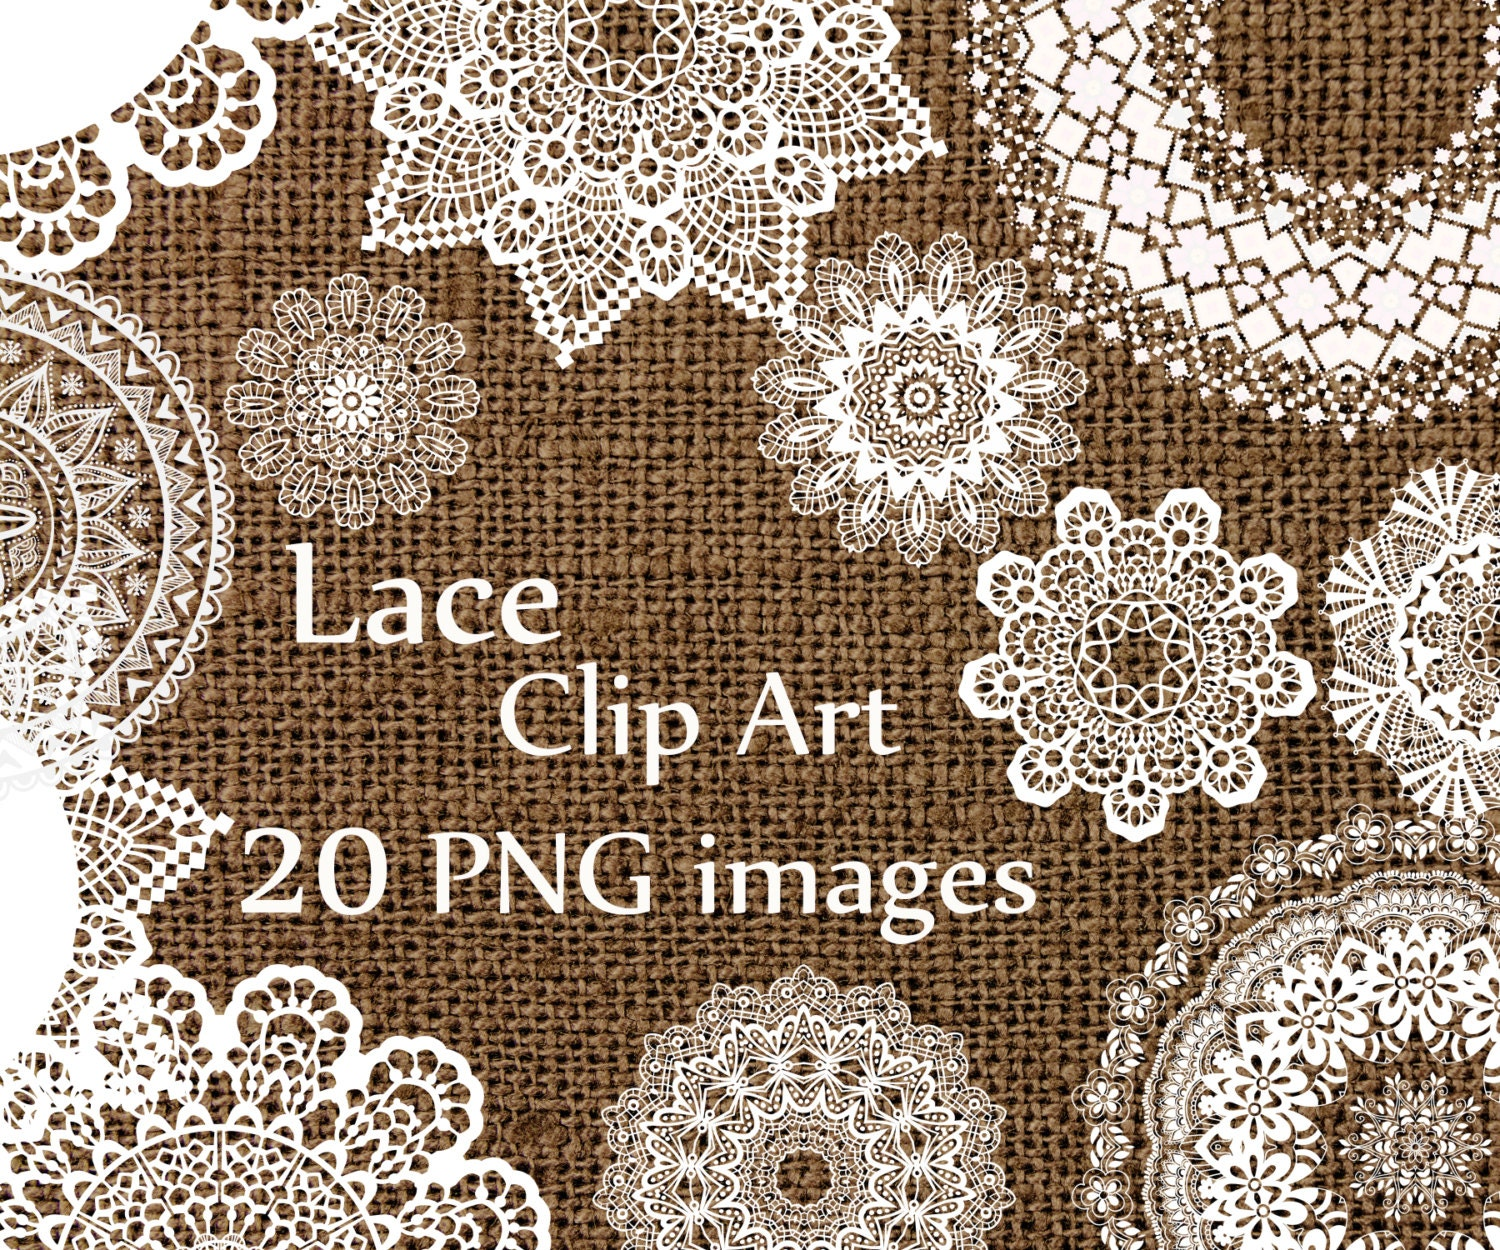 Digital lace clipart lace clip art wedding lace by chilipapers